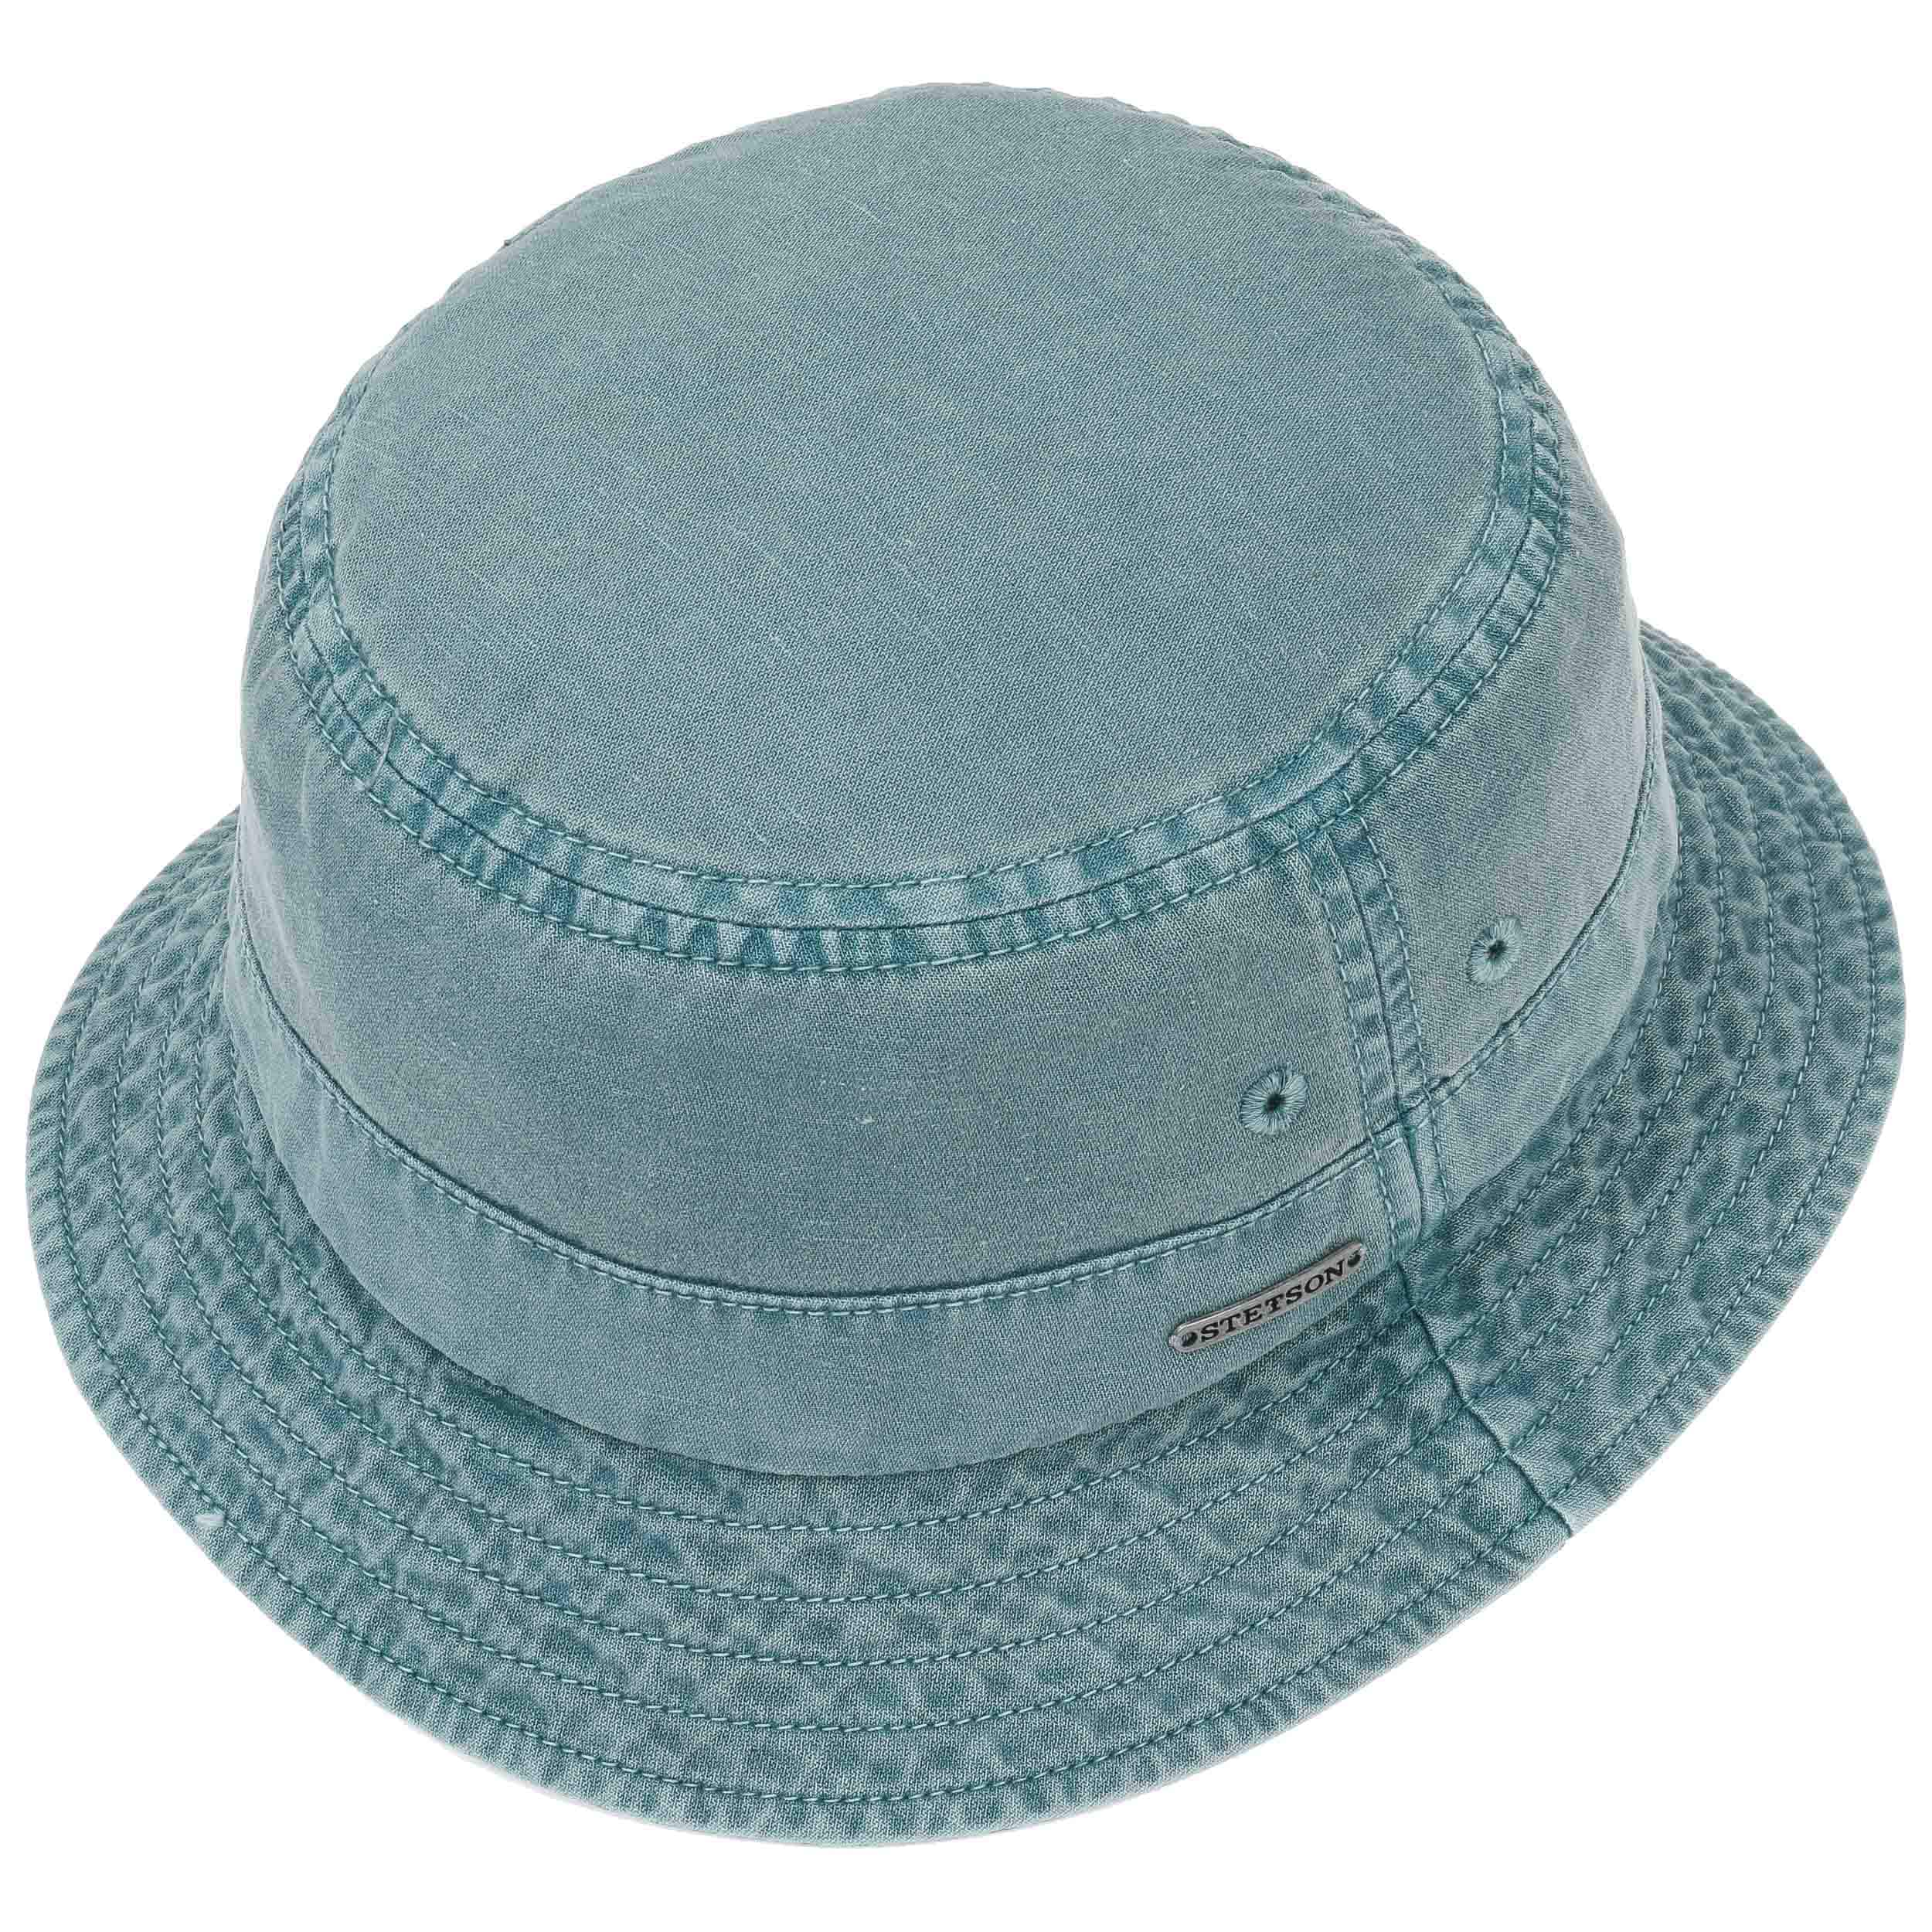 Dyed Cotton Floppy Hat by Stetson Sun hats Stetson UPOzDWa